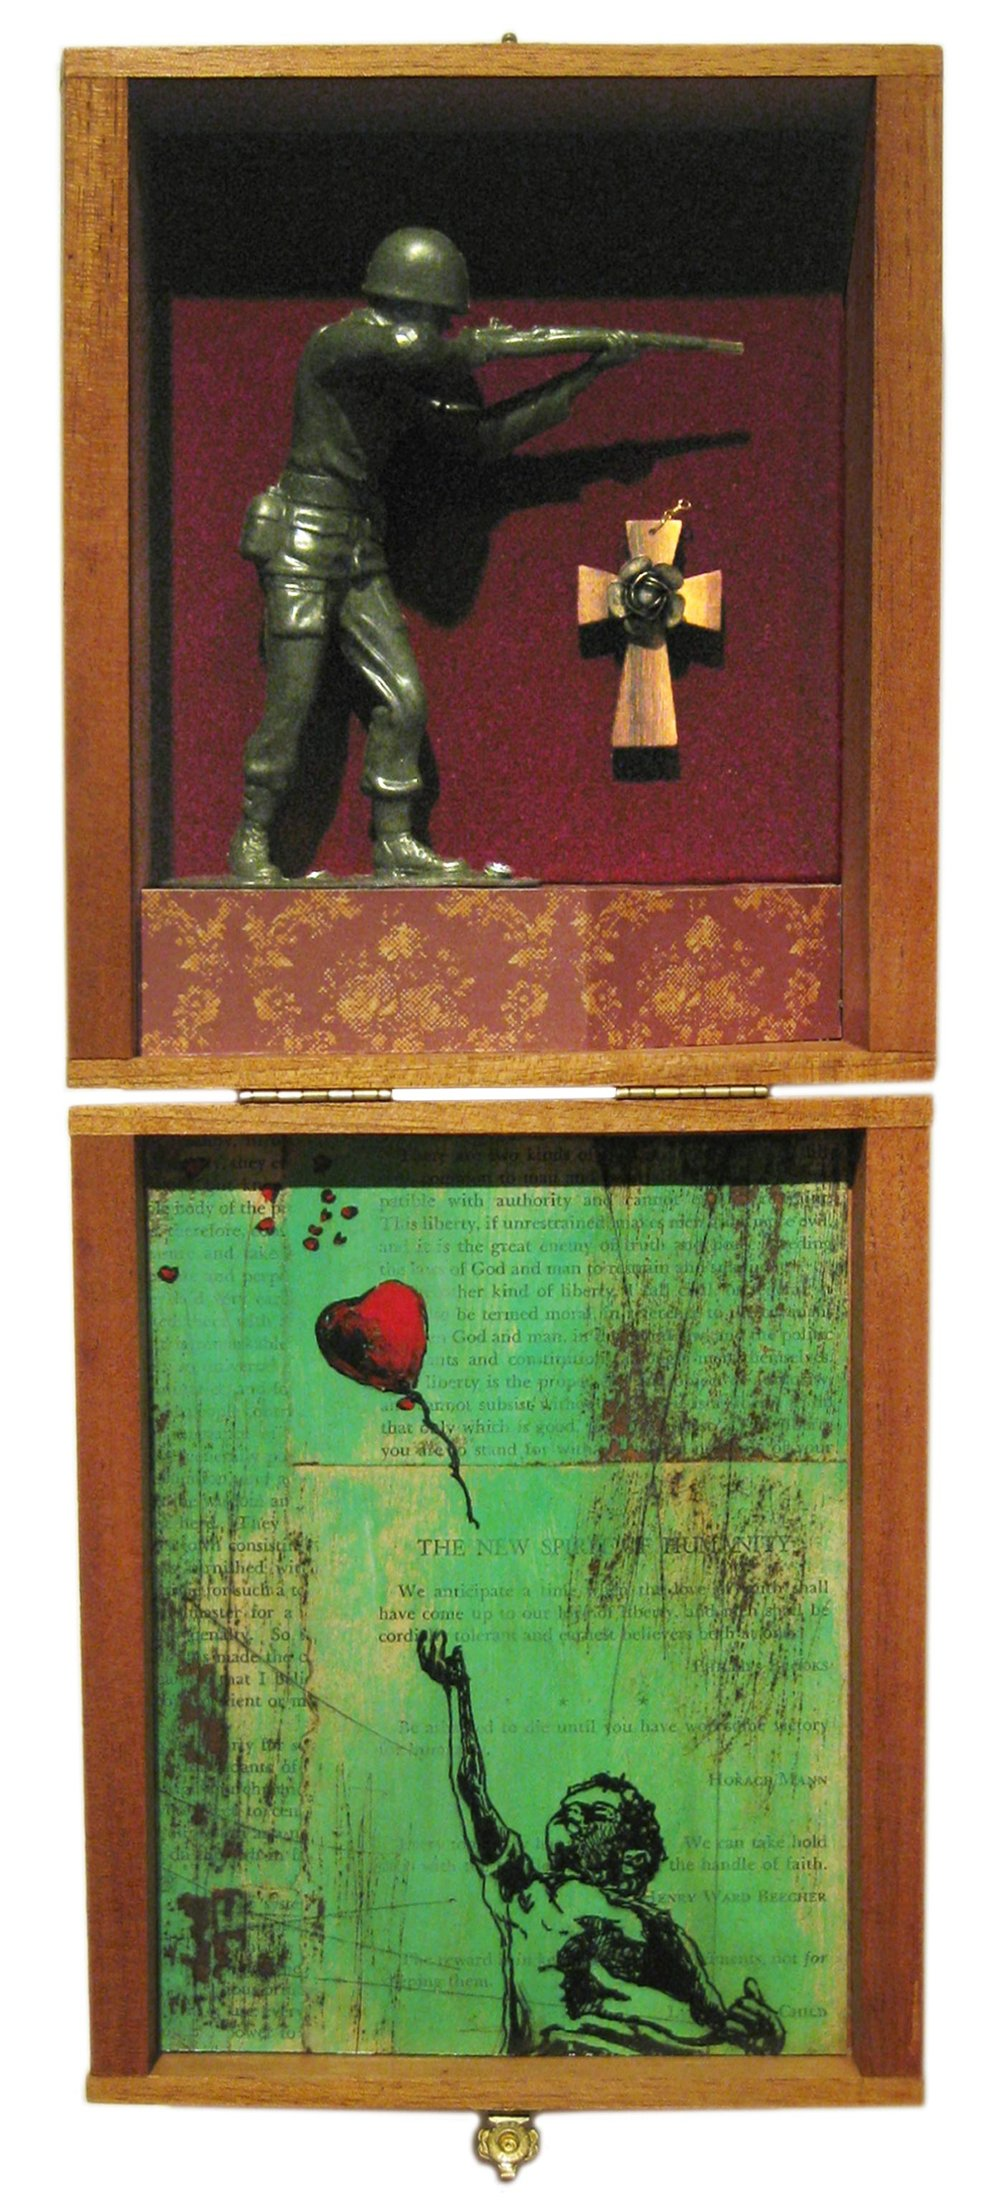 Boyhood Bravery   Mixed Media Cigar Box Installation 7in x 16.25in x 3in deep